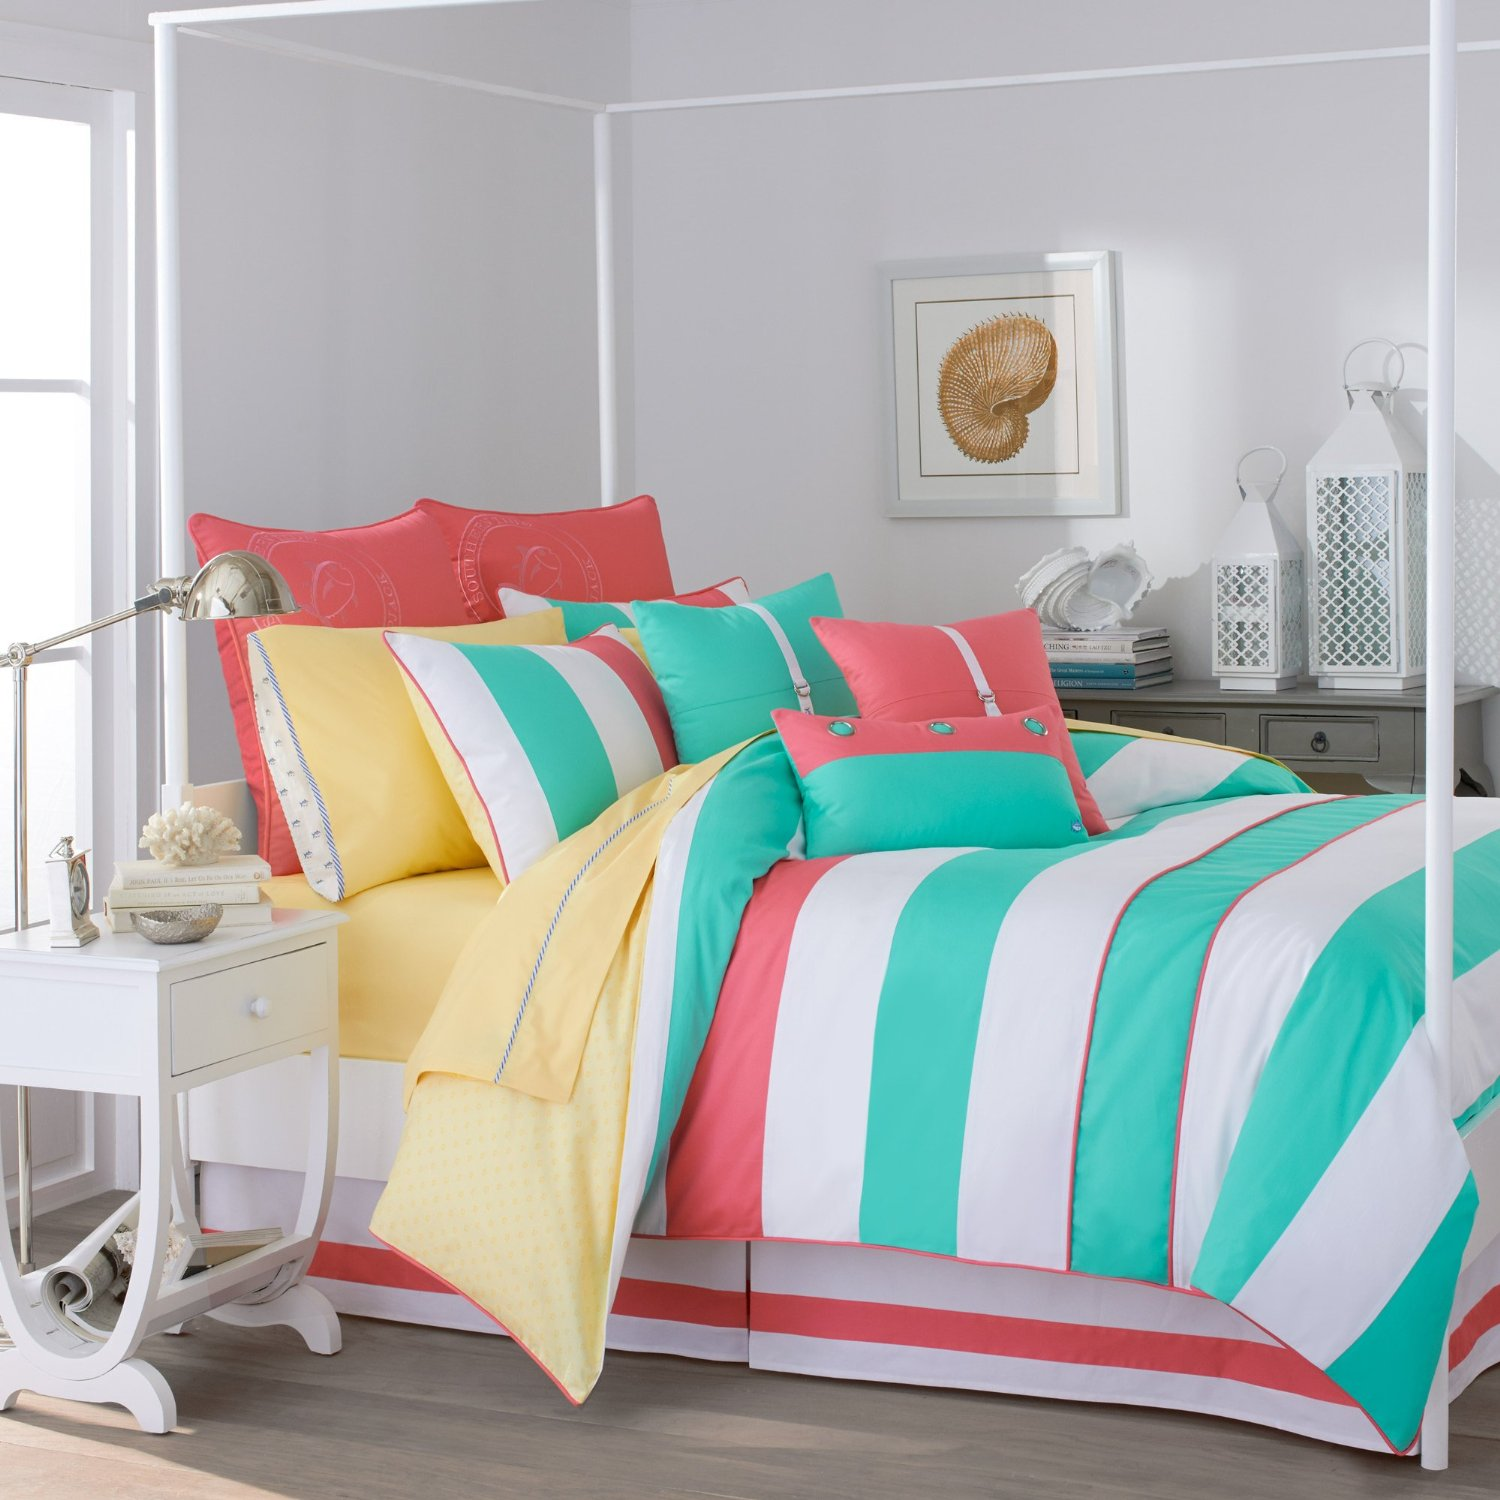 stylish ideas of spring bedding sets designs custom home design colorful stripe bedding for teen girls image 3 of 10